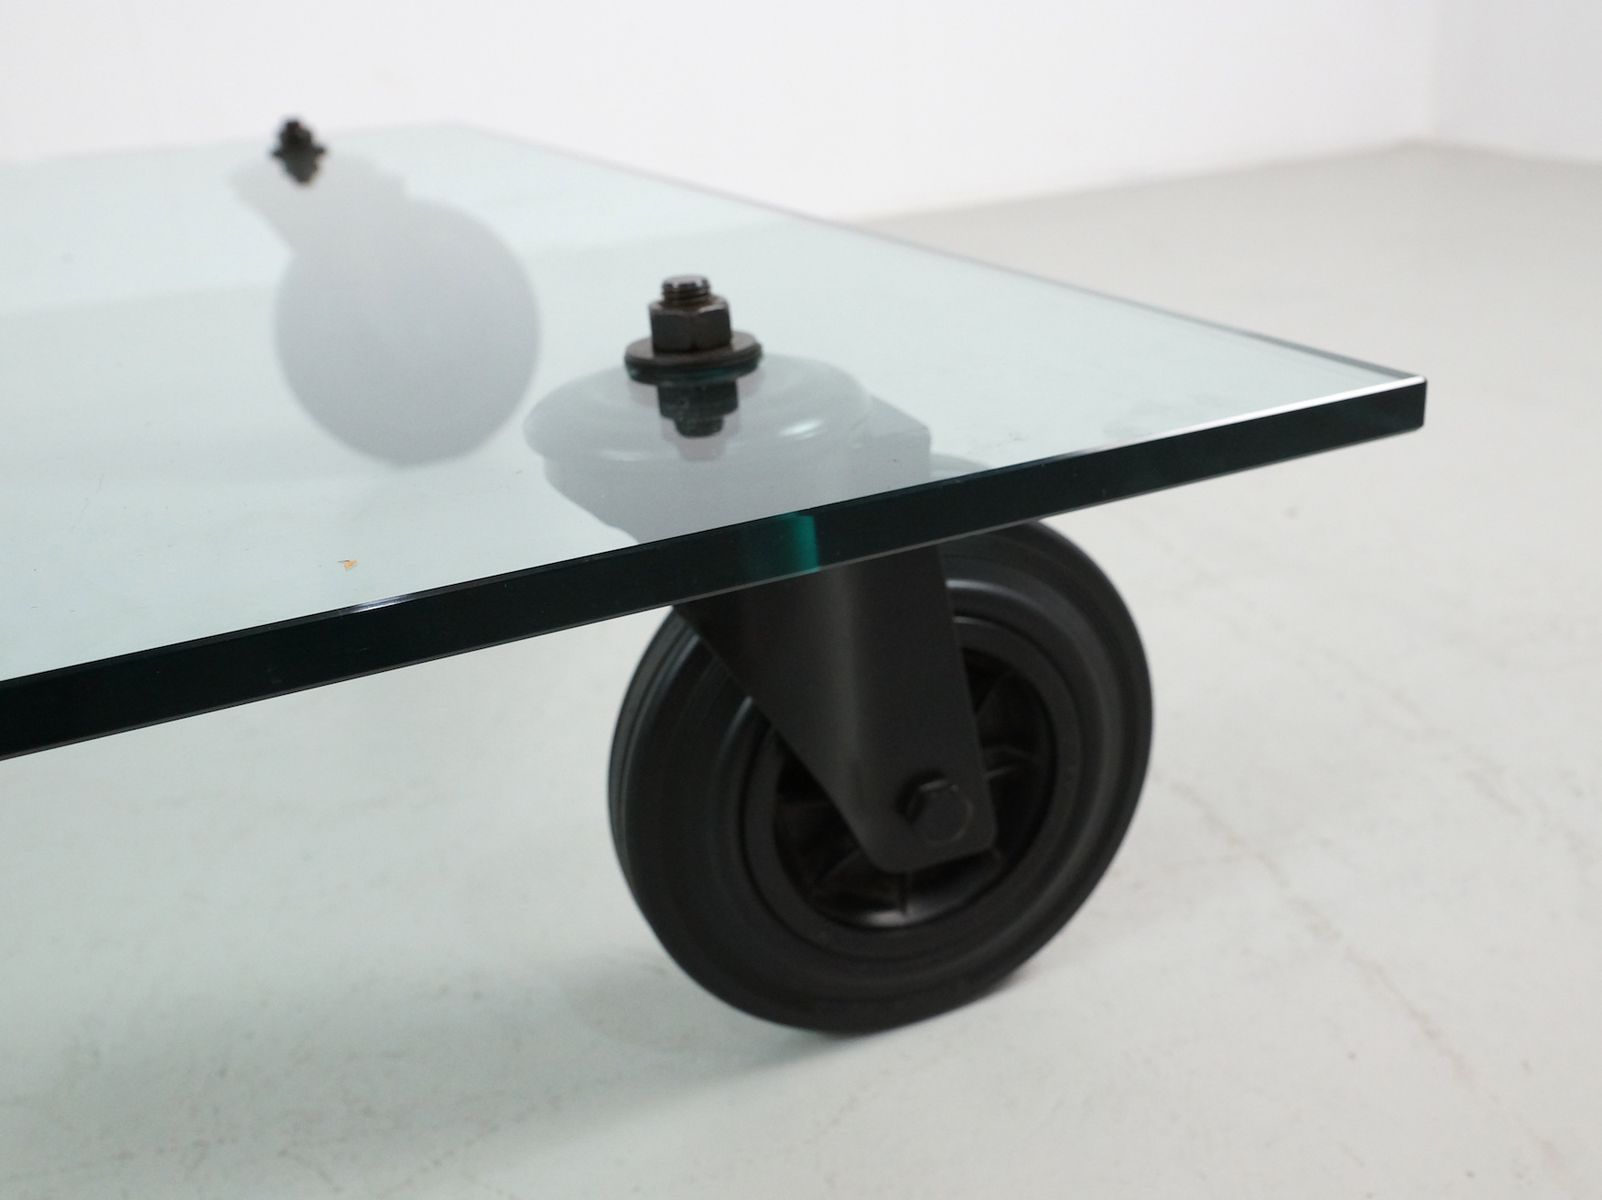 Vintage italian low glass tavolo con ruote coffee table by - Tavolo con ruote gae aulenti ...